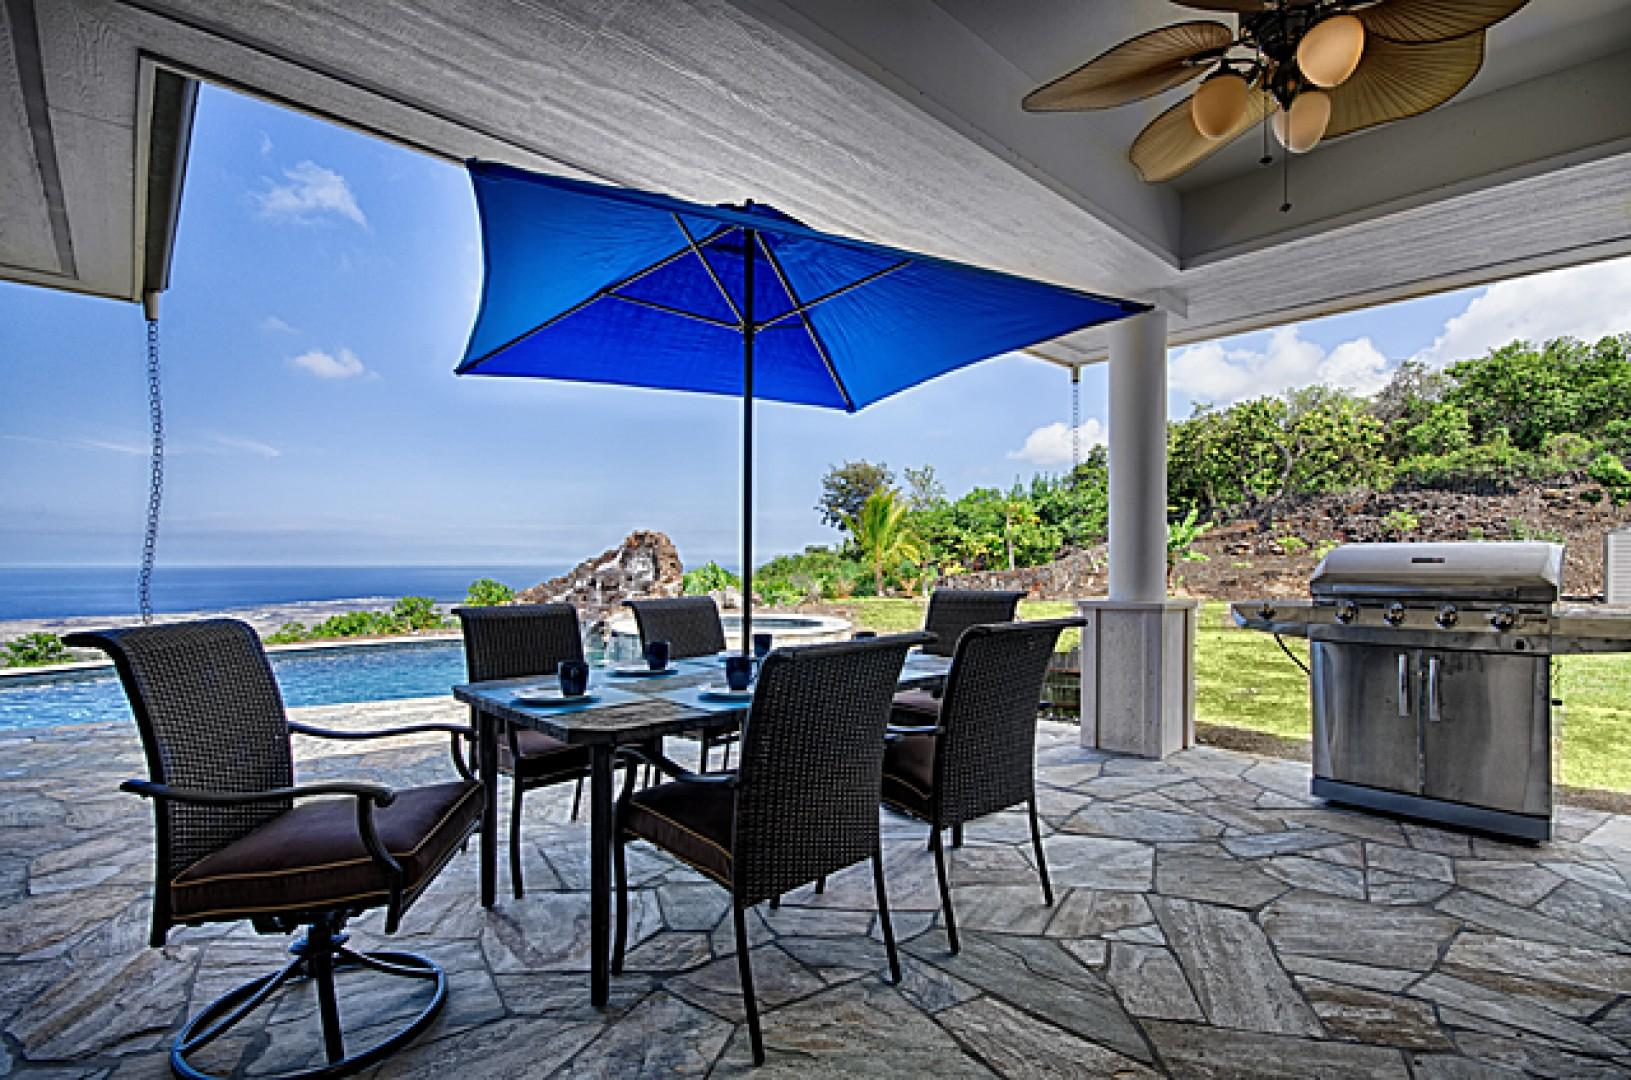 There's plenty of seating on this lanai while the grill heats up